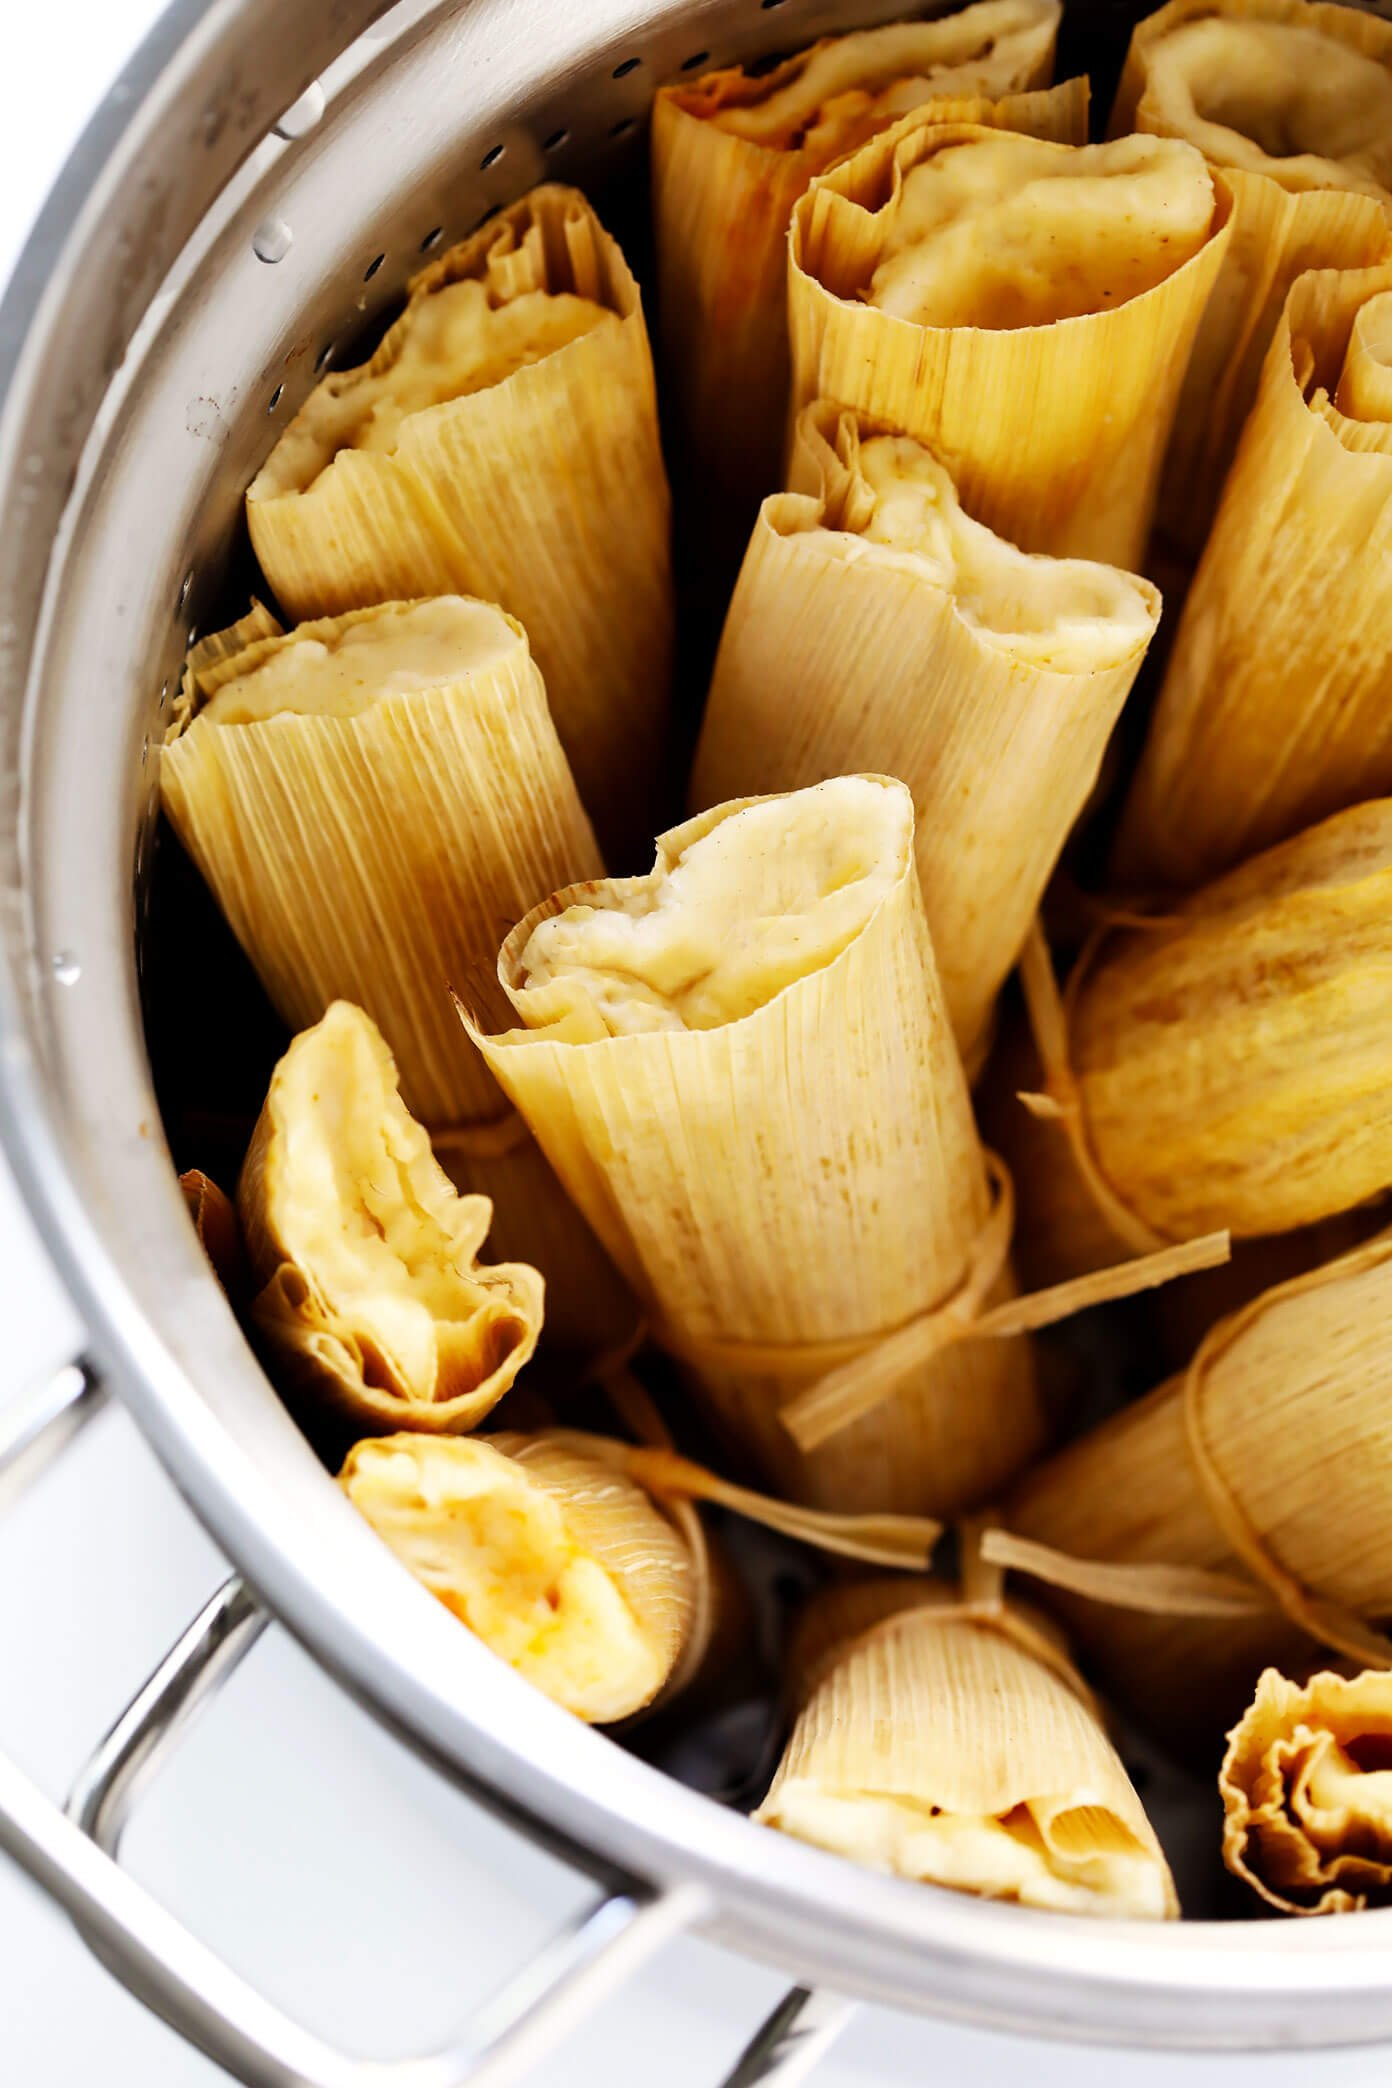 How To Steam Tamales | A Step-By-Step Tutorial